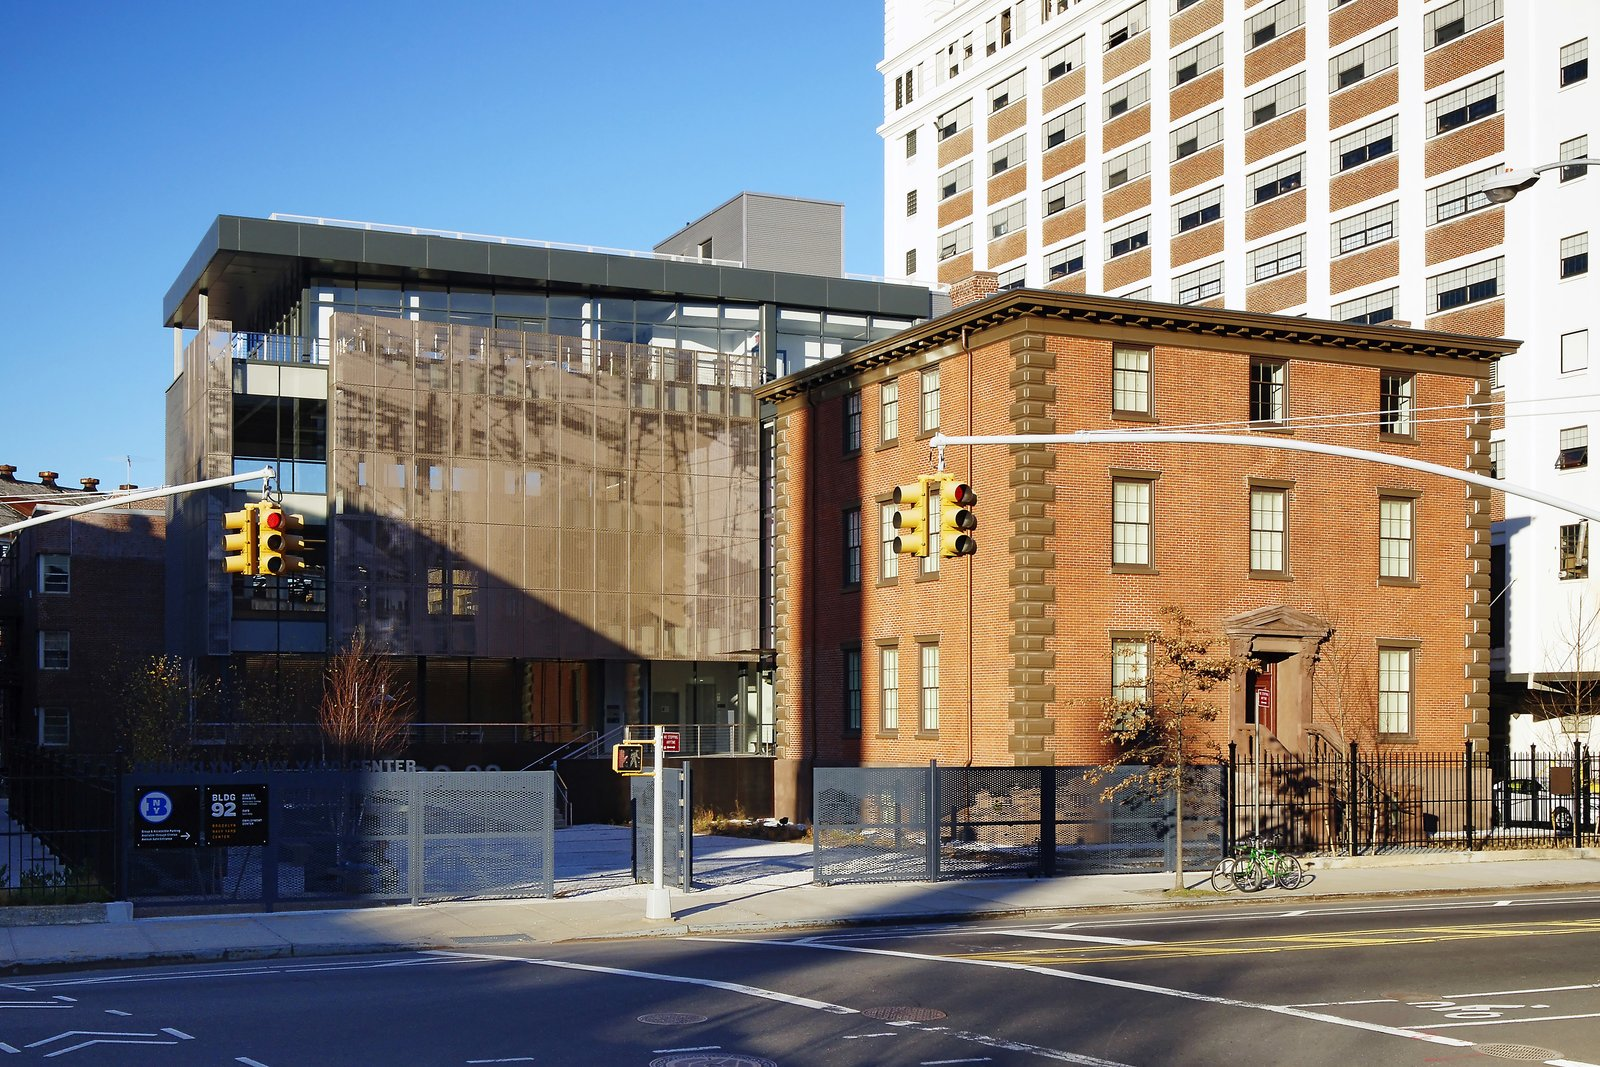 October 25 Building of the Day: The Brooklyn Navy Yard Center at BLDG 92  Beyer Blinder Belle Architects & Planners and Workshop/APD LLC   Photo credit: Copyright Tom Olcott   2013 Buildings of the Day